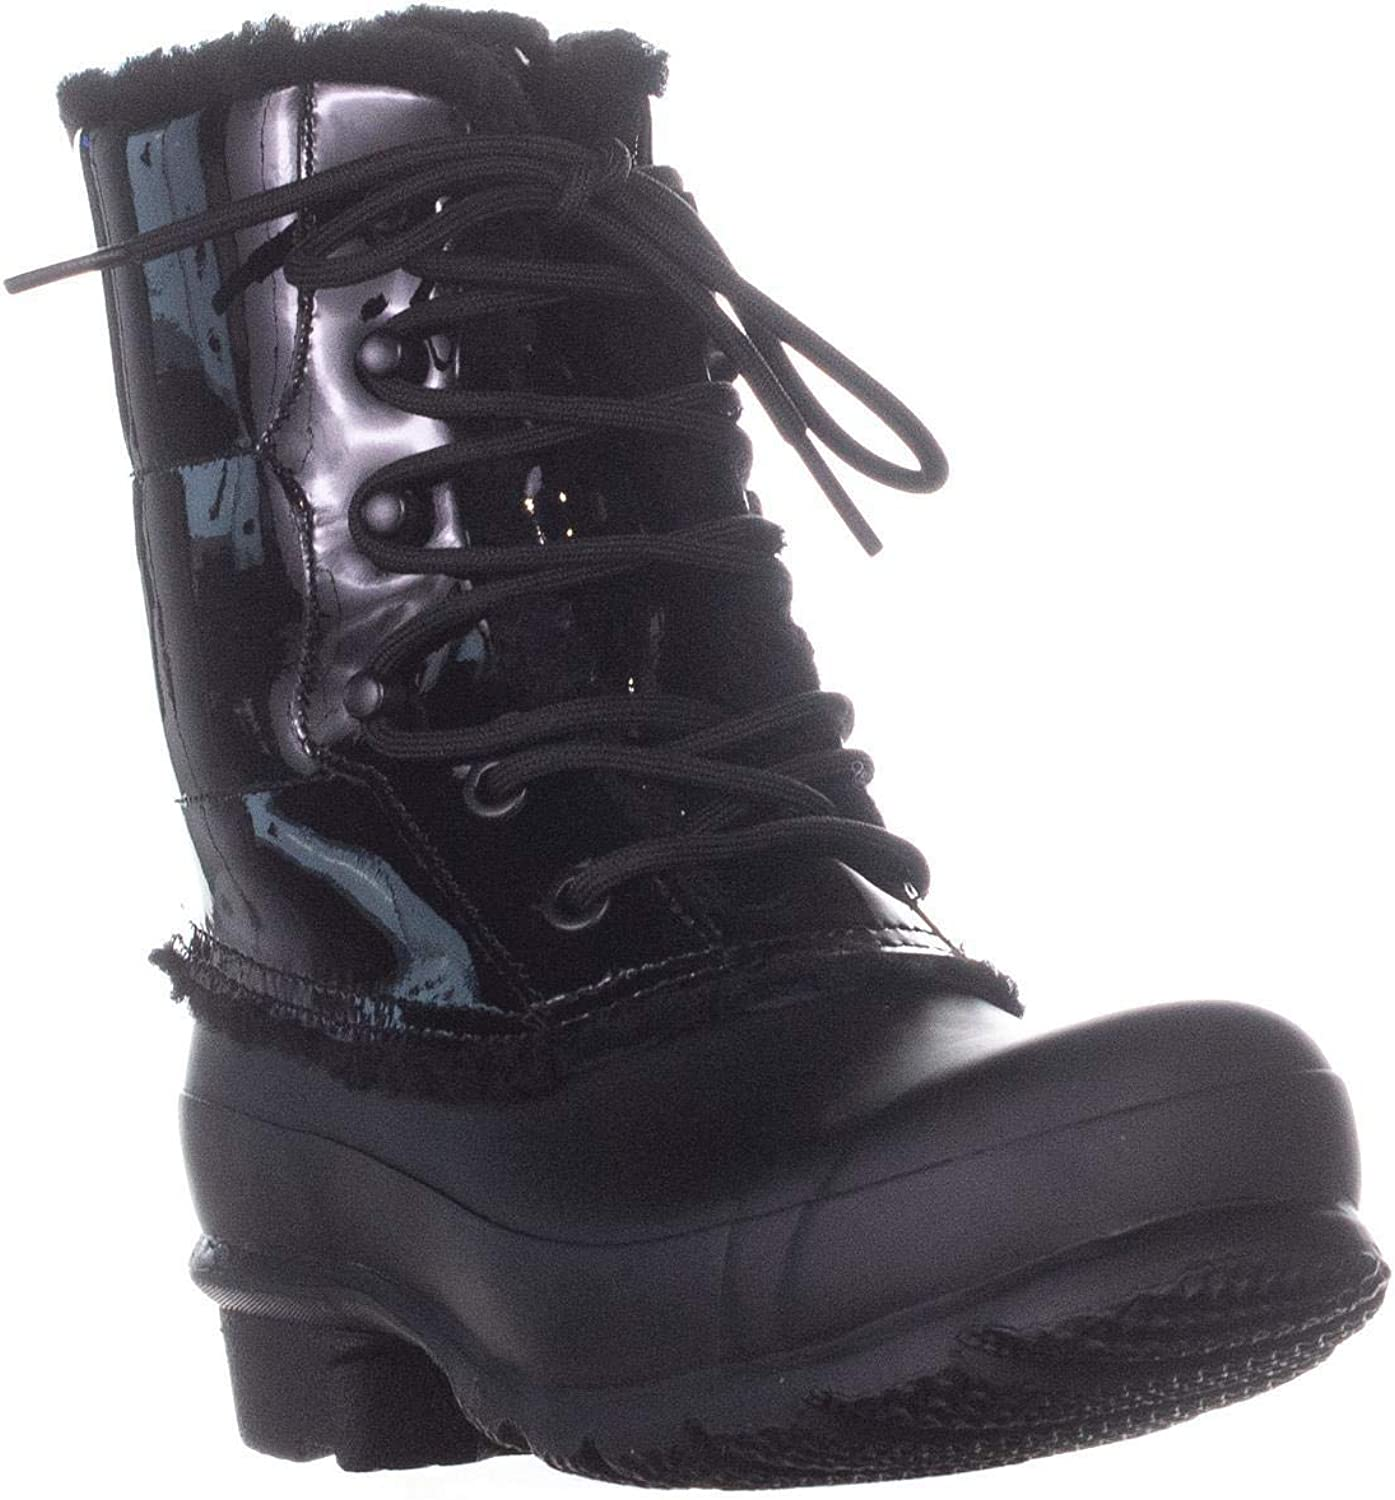 Hunter Womens Patent Leather Rubber Square Toe Mid-Calf Cold Weather Boots